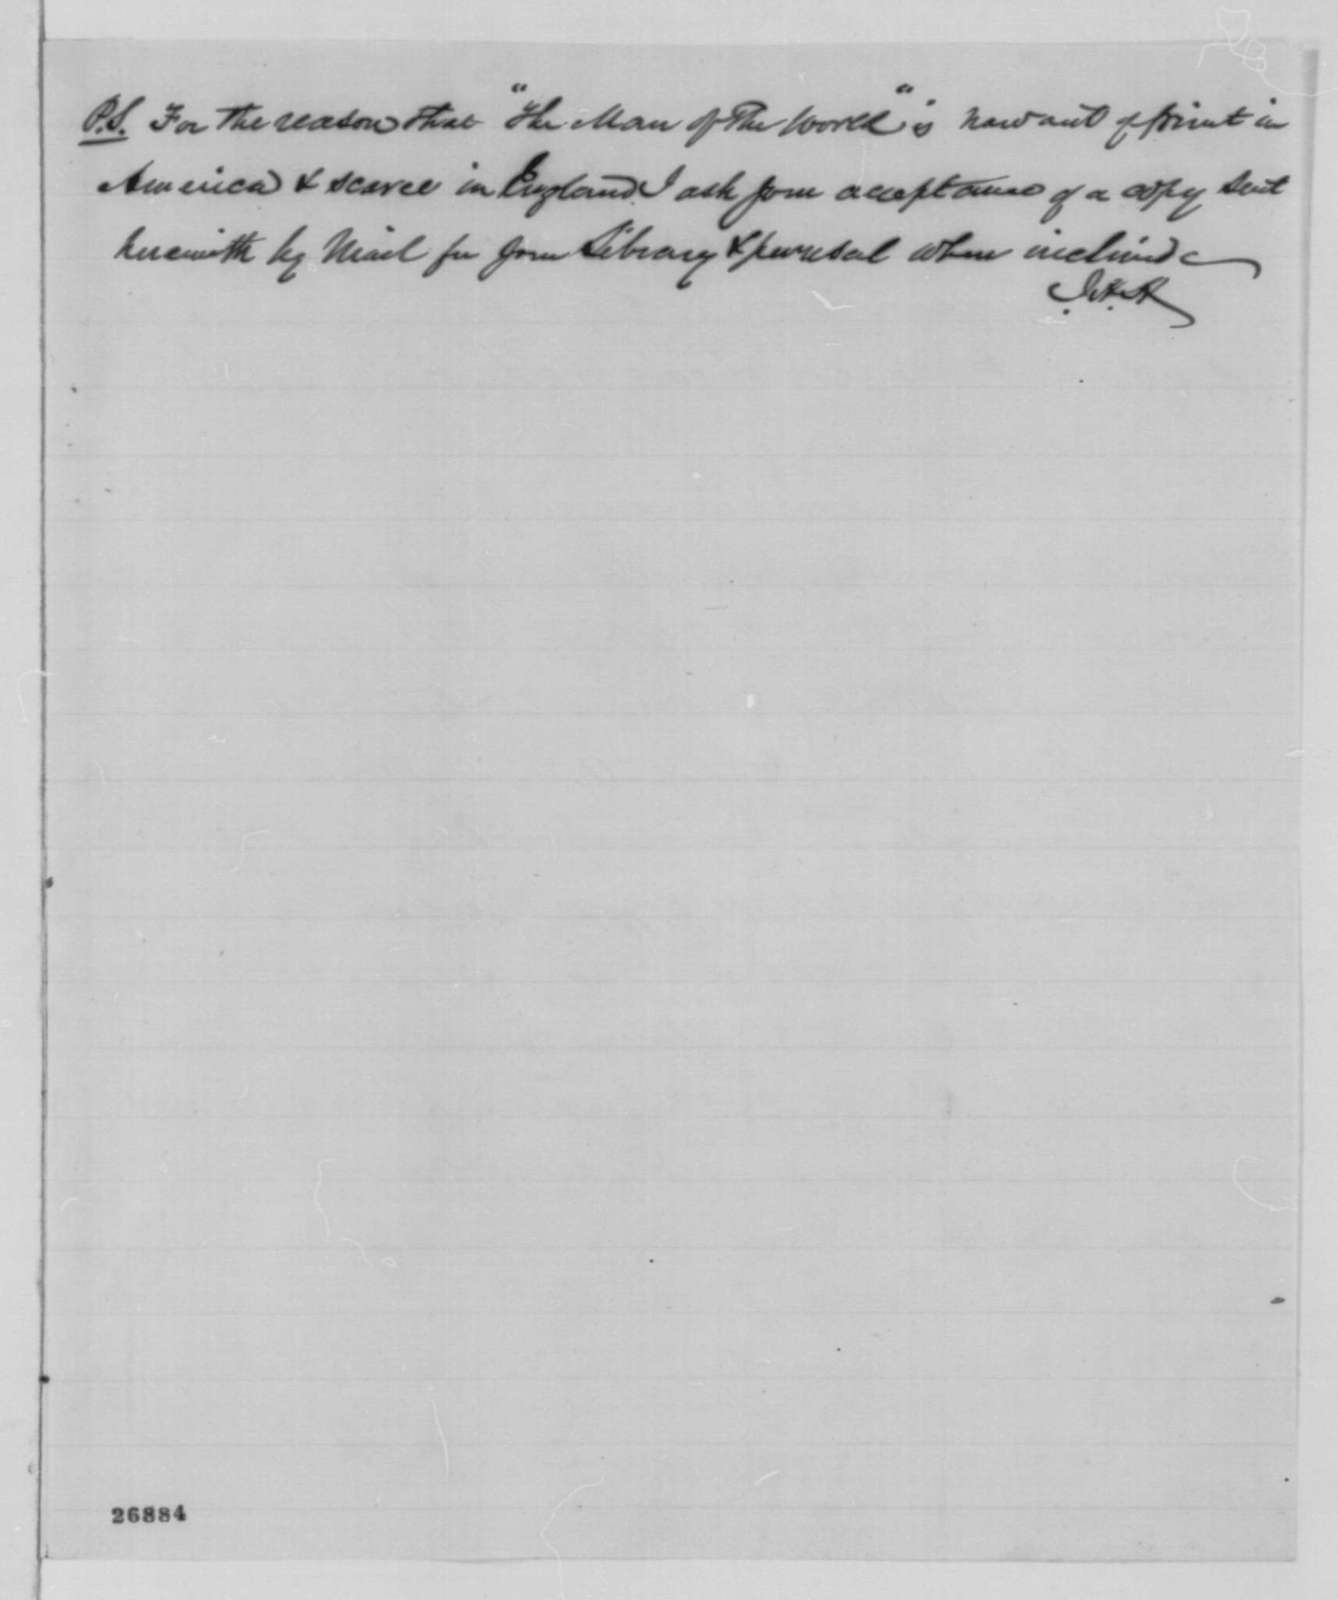 James H. Hackett to Abraham Lincoln, Saturday, October 03, 1863  (Sends copy of play and informs Lincoln of his plans to perform in Washington)